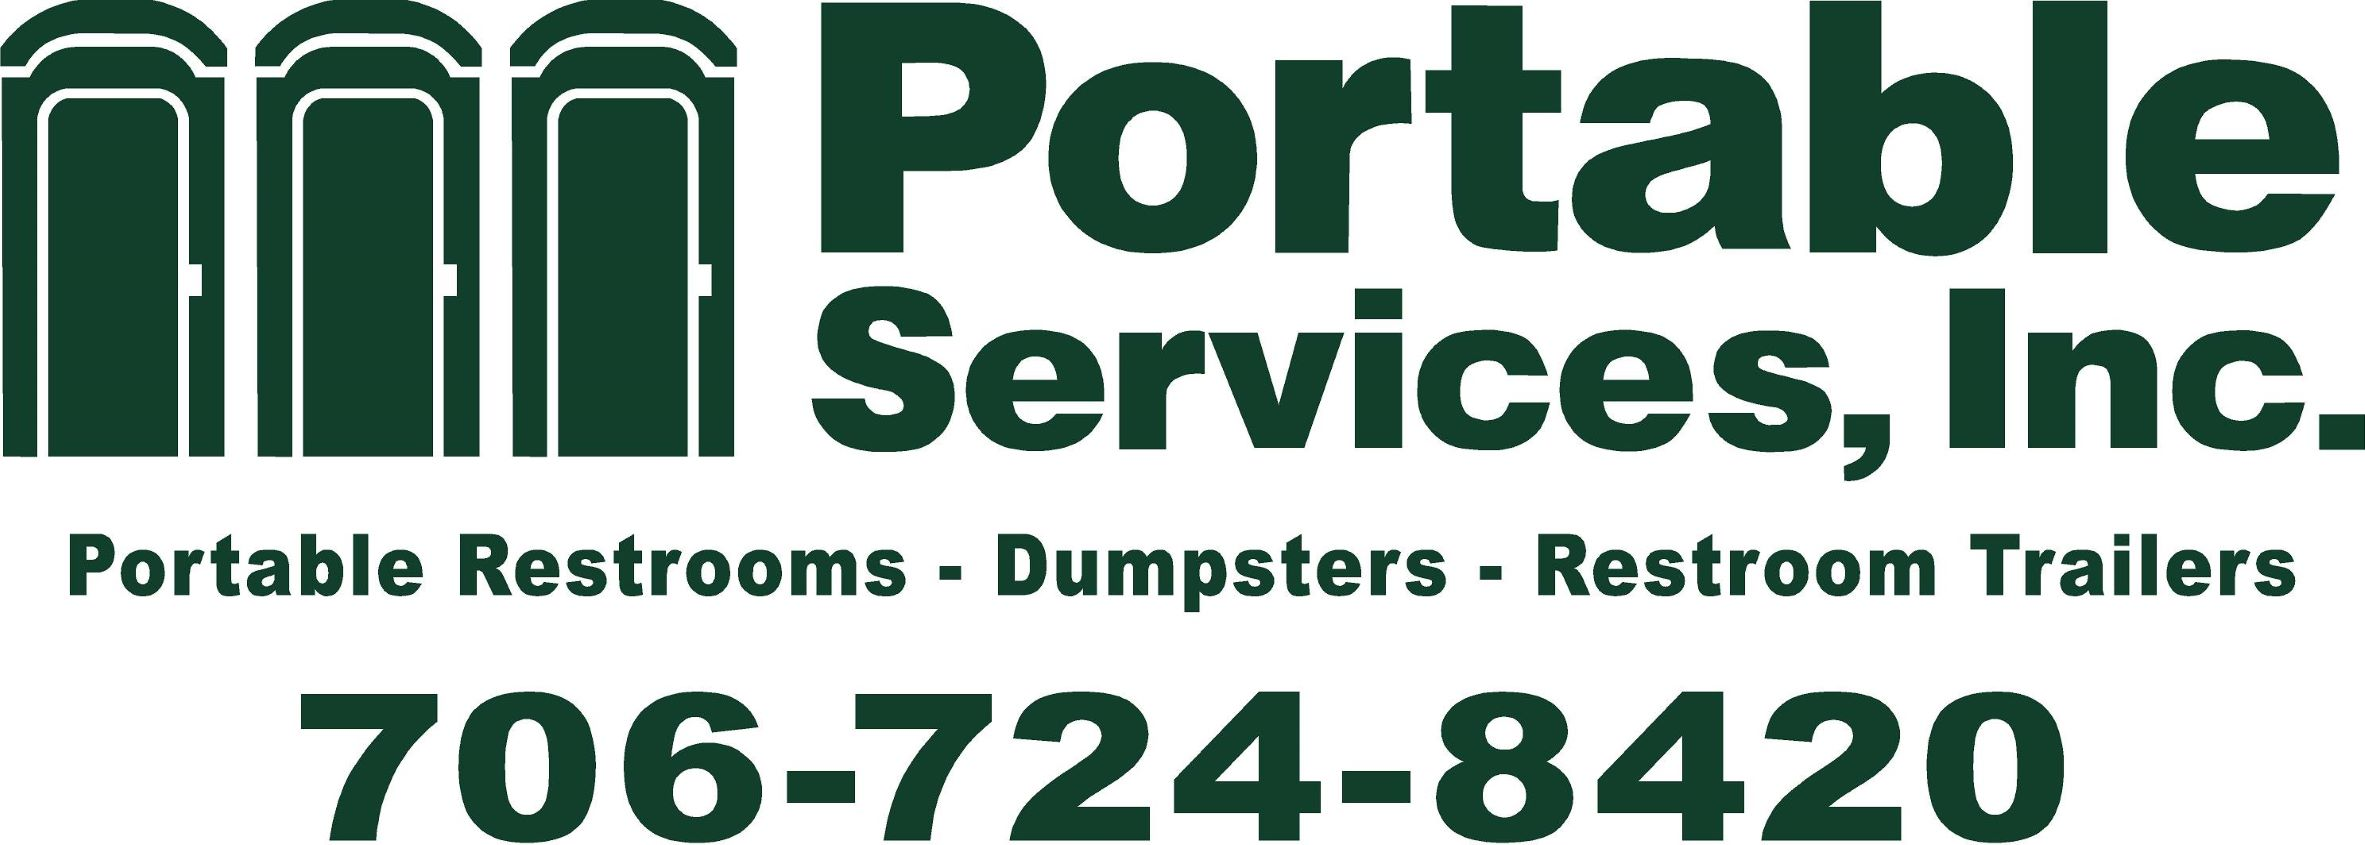 Portable services logo-BEST.jpg